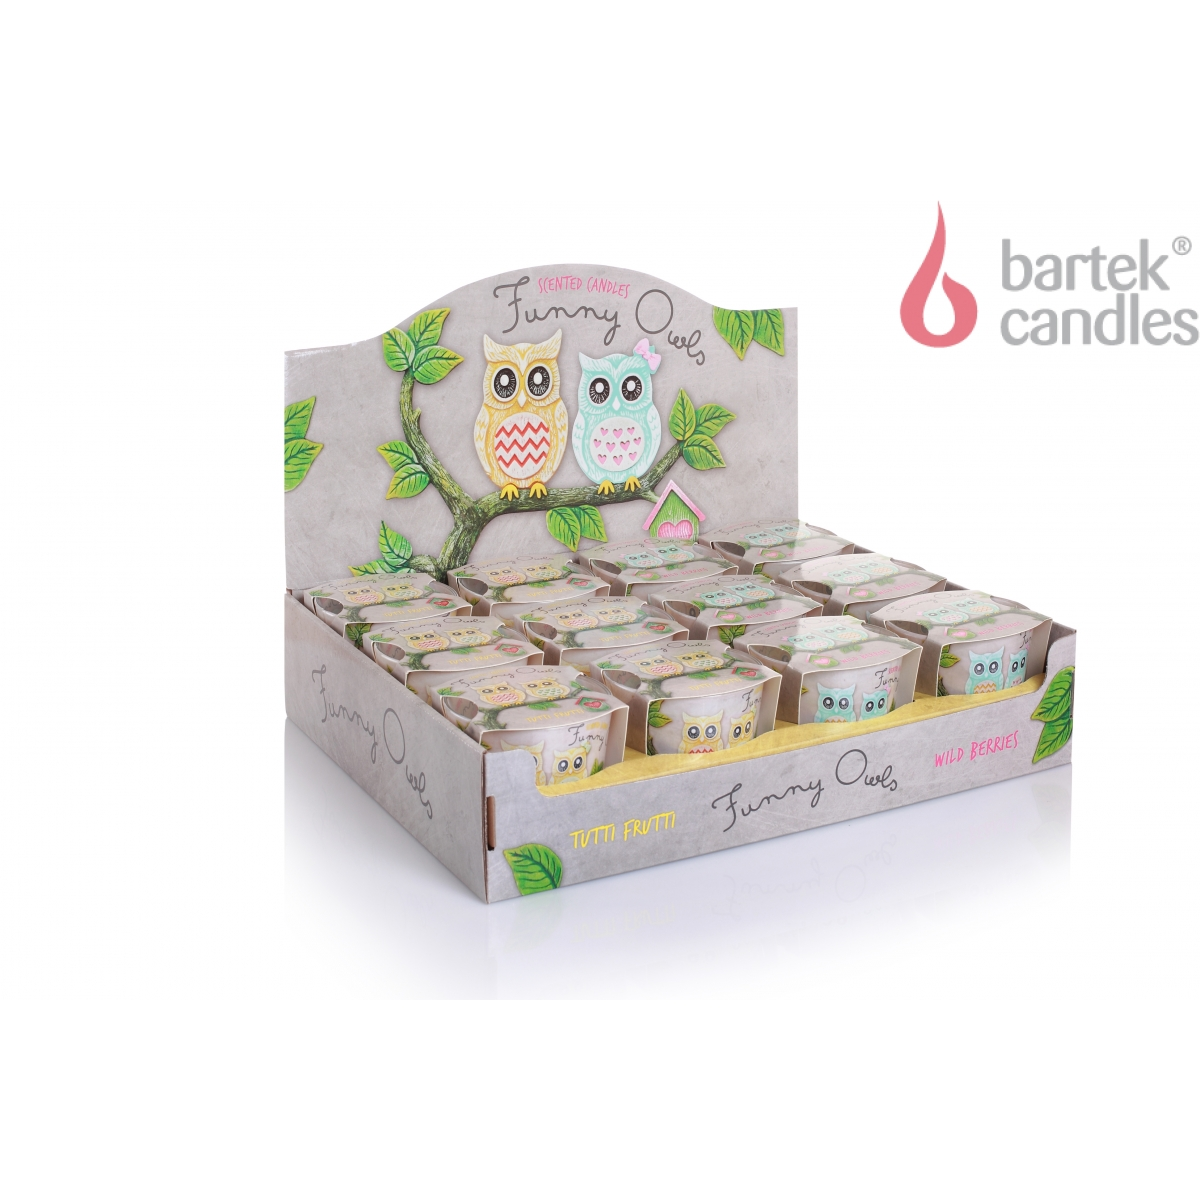 Bartek Candles 115 g Funny Owls